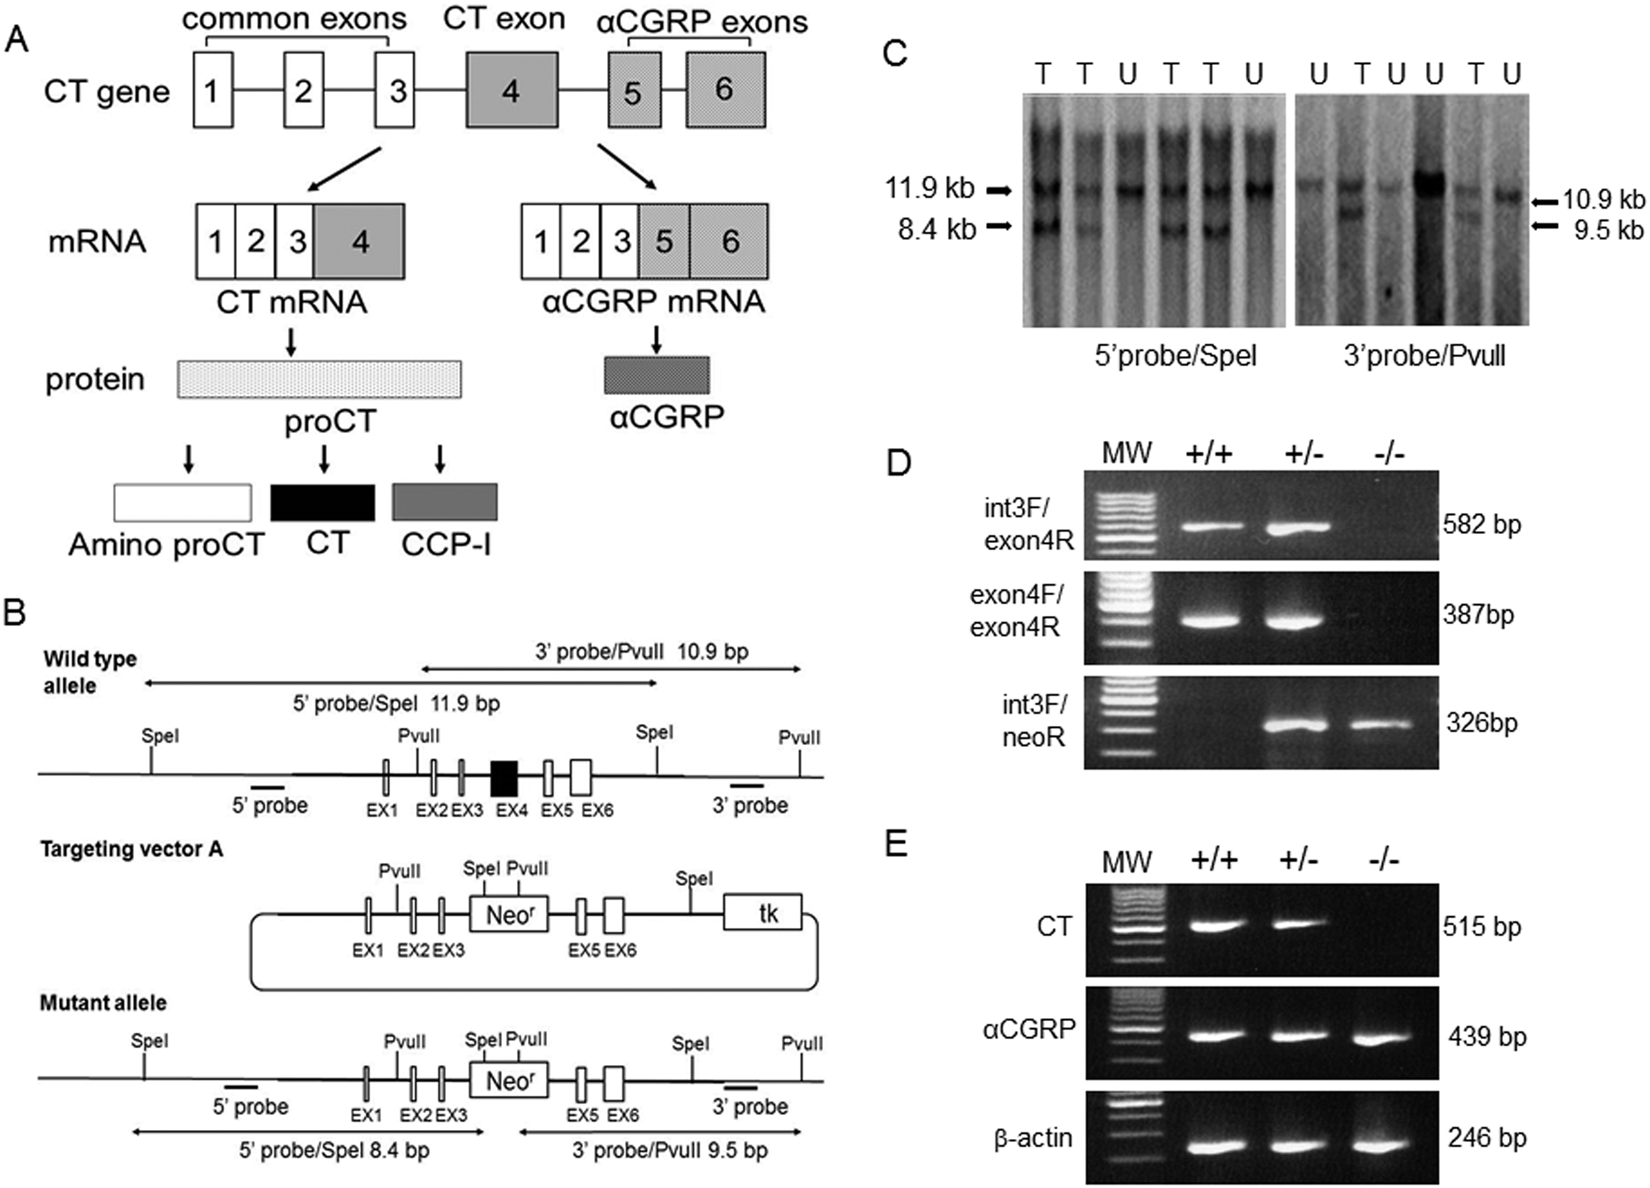 Endogenous calcitonin regulates lipid and glucose metabolism